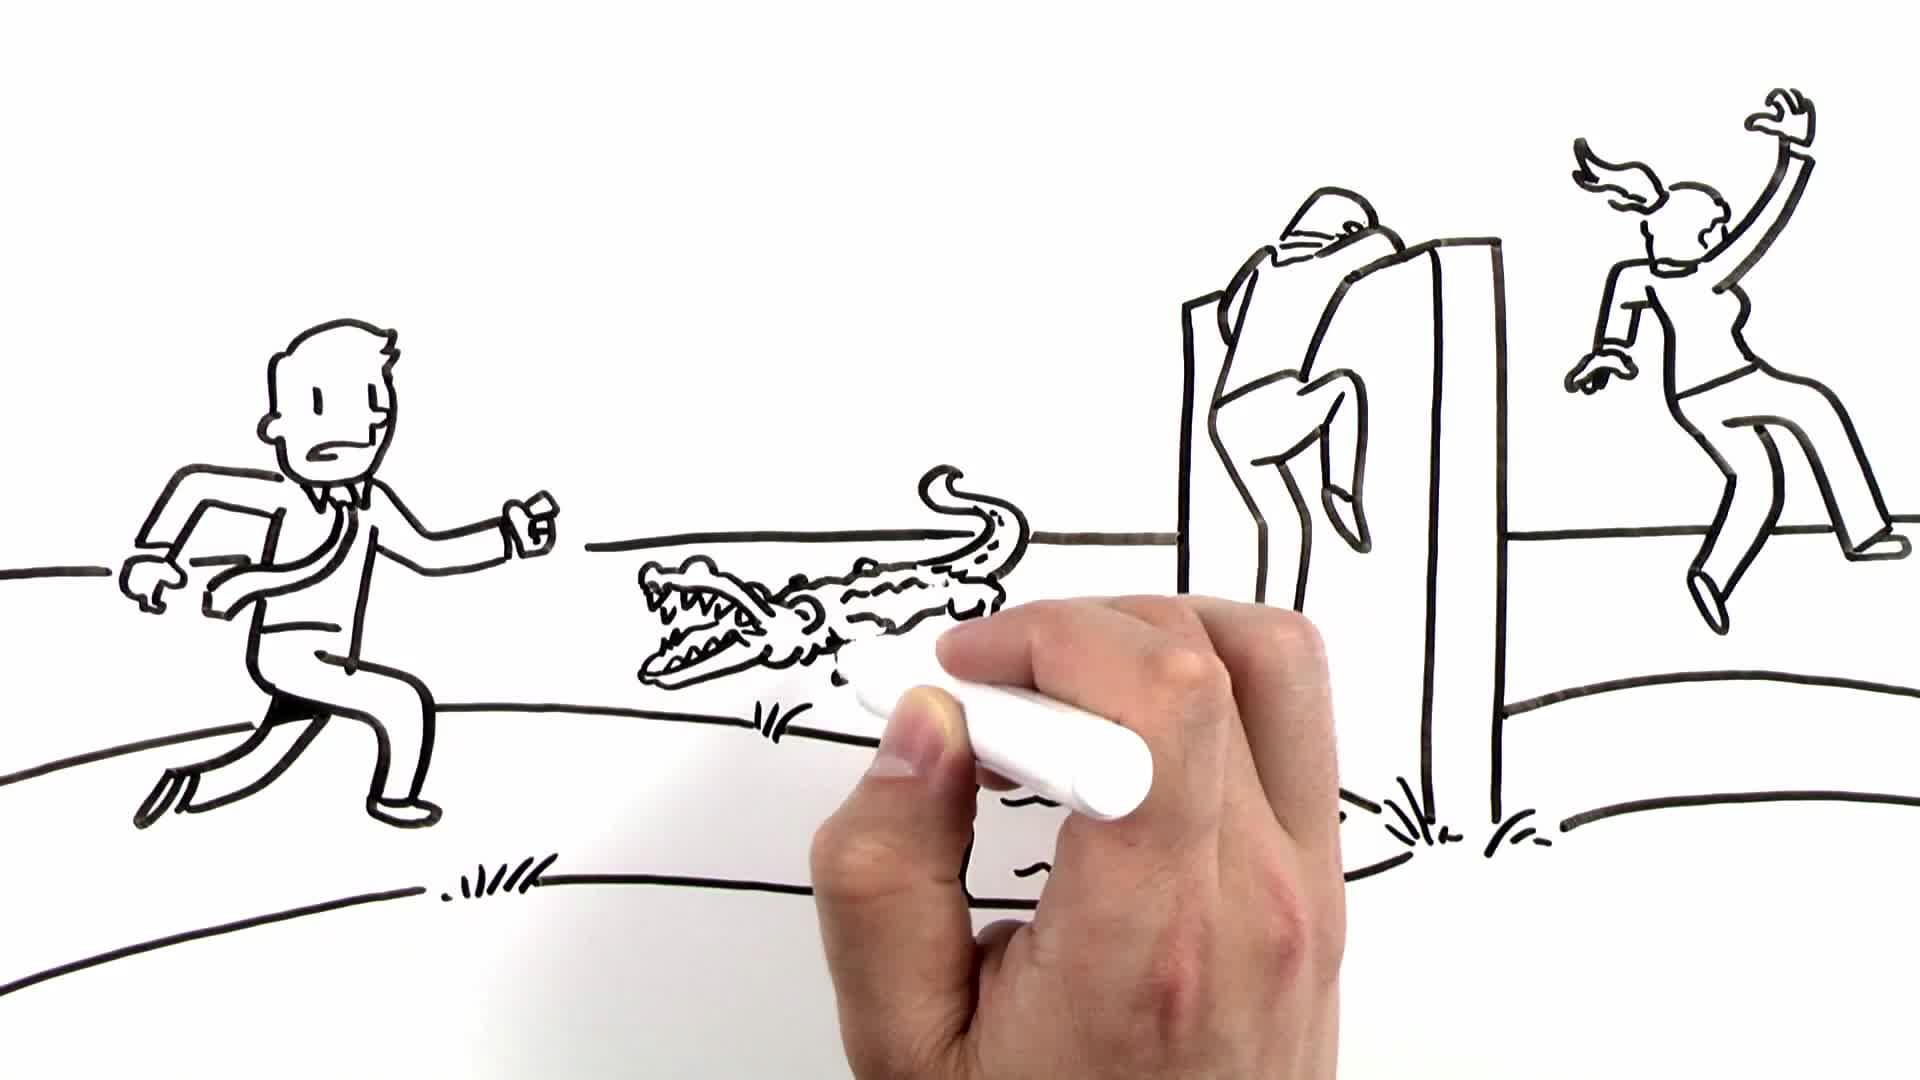 The electric utility industry is evolving at a rapid pace. Check out how this whiteboard video showcases the complex challenges our industry faces through clever animations.